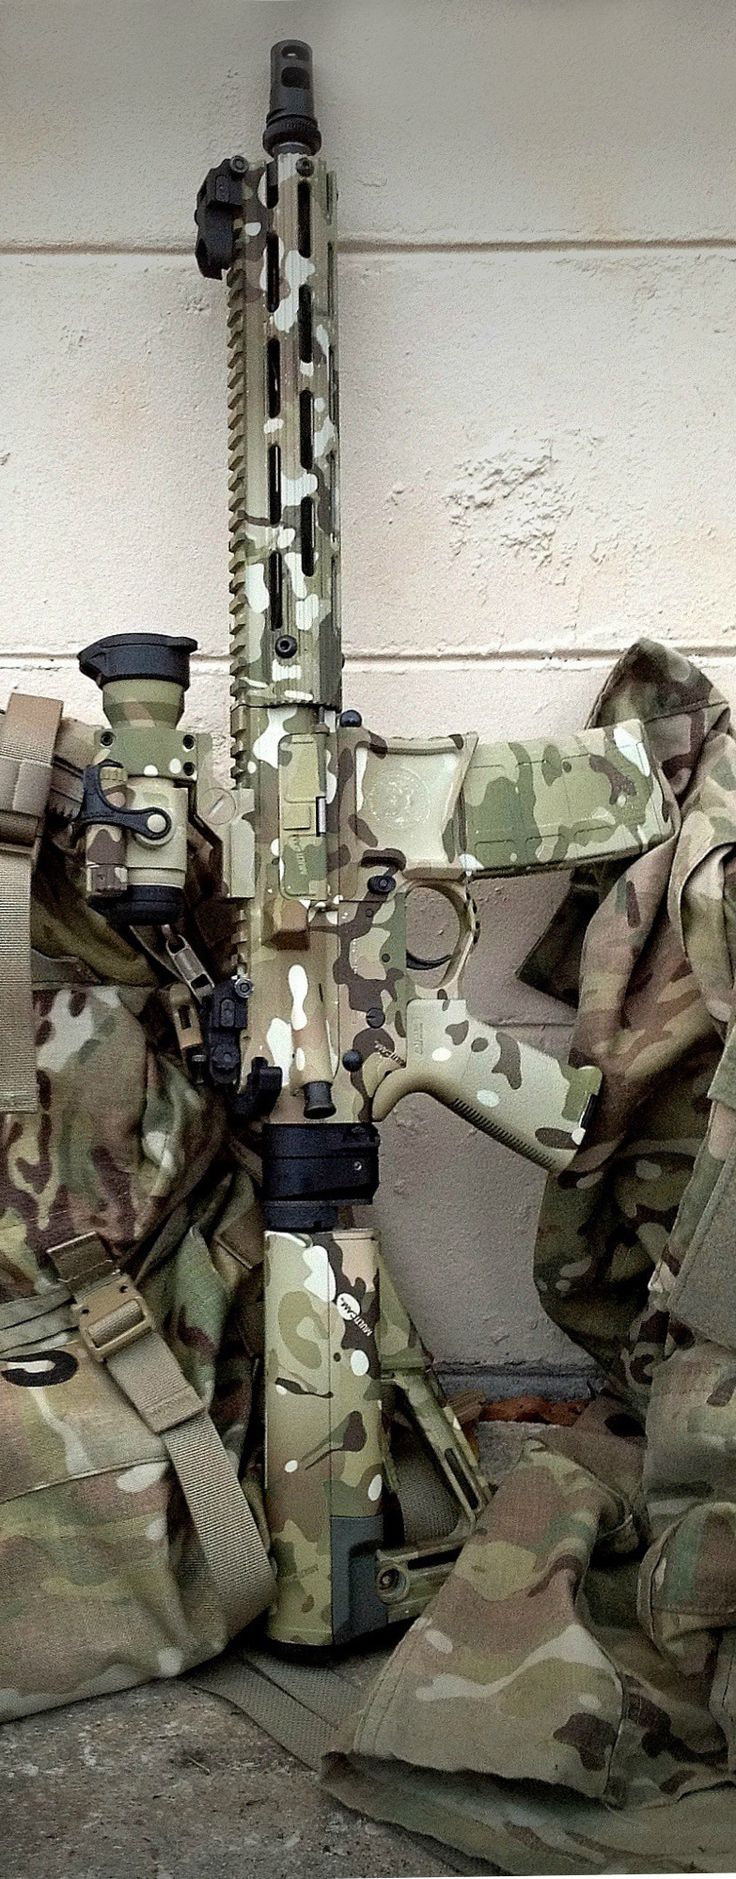 Latest Military Technology Reviews, News and Tactical Equipments @ http://www.militaryarm.comLoading that magazine is a pain! Get your Magazine speedloader today! http://www.amazon.com/shops/raeind